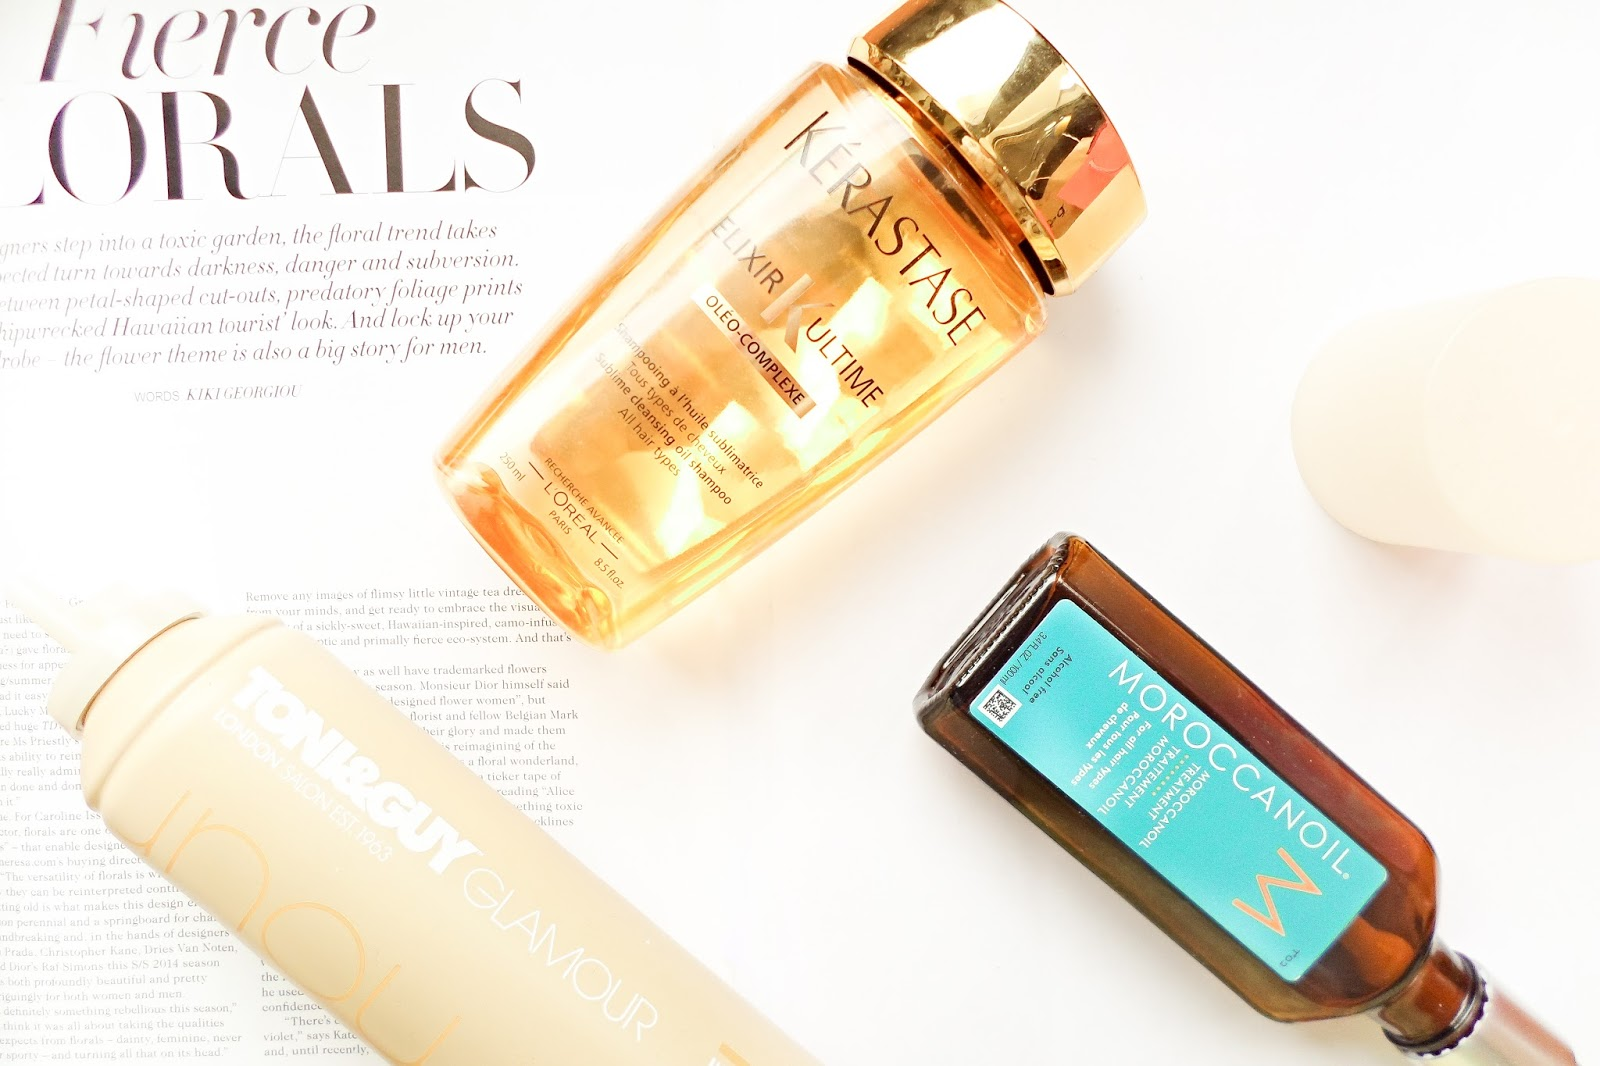 marc jacobs, daisy perfume, kerastase sublime cleansing oil shampoo, toni and guy glamour mousse, moroccan oil, jojoba company, jojoba oil, benefit sunbeam, review, bloggers, melbourne, twoplicates, edit, beauty bloggers, makeup